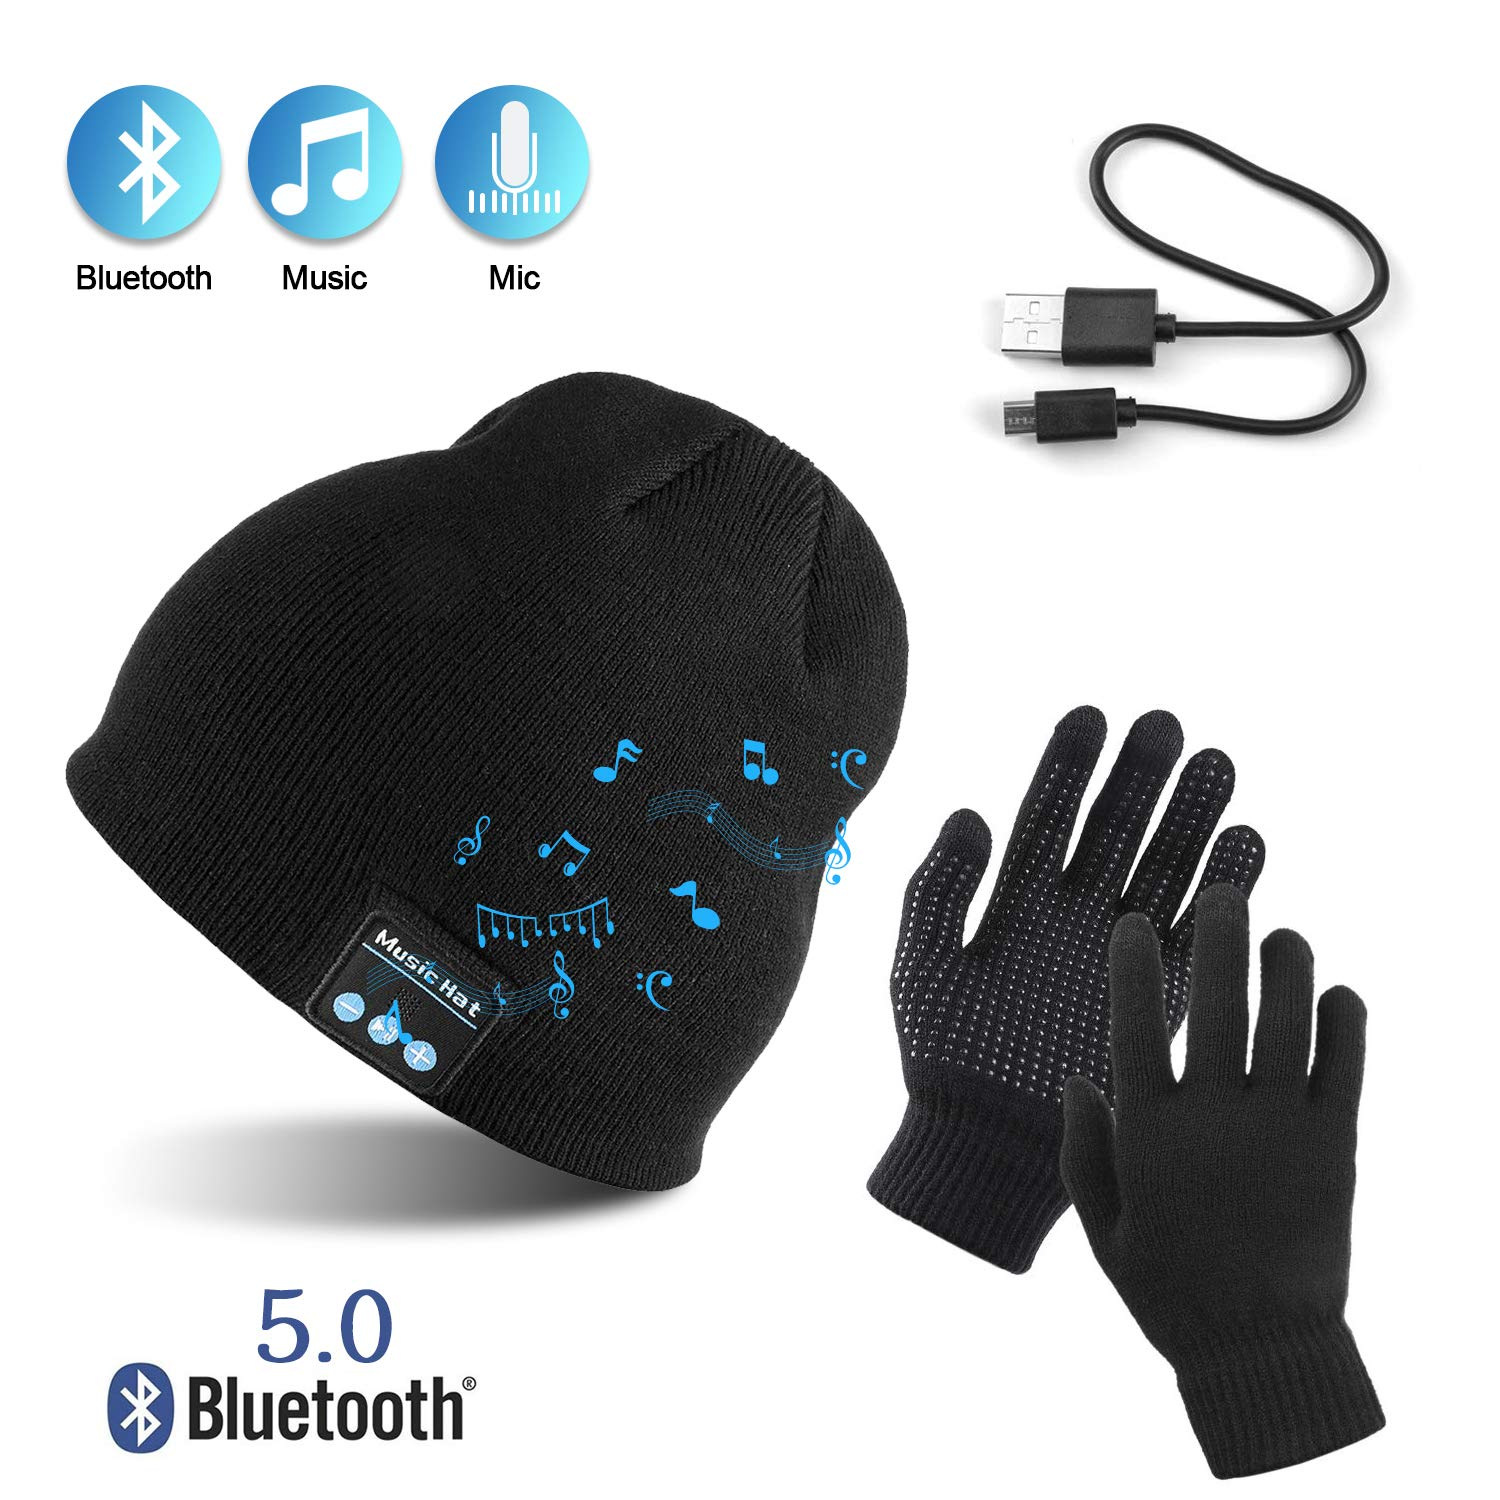 AYPOW Bluetooth Beanie with Touchscreen Gloves Set, Winter Warm Knitted Wireless Bluetooth Headset Music Hat for Running Skiing Hiking